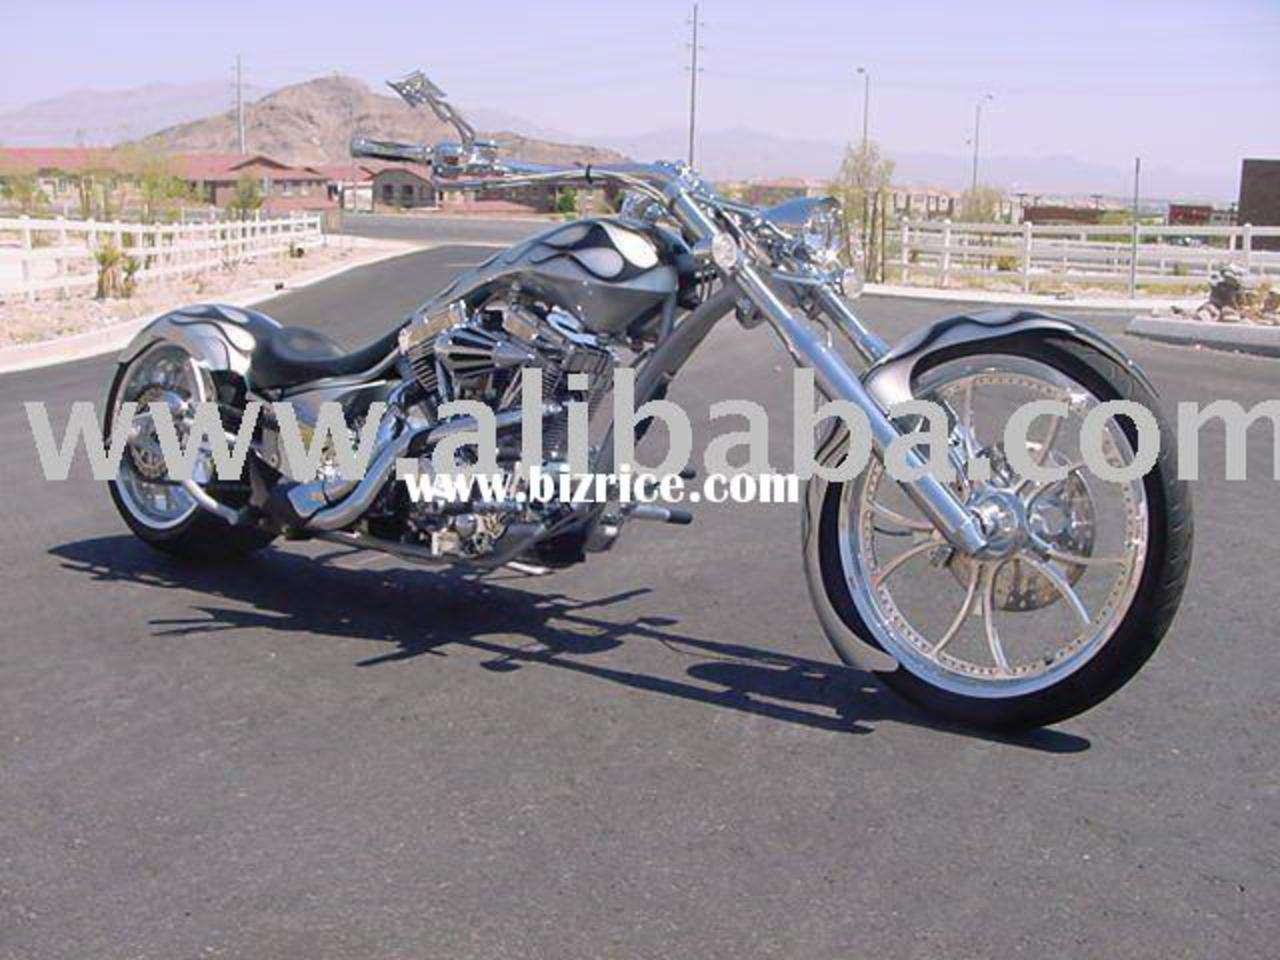 Big Bear Choppers Athena 114 X-Wedge 2009 images #92602